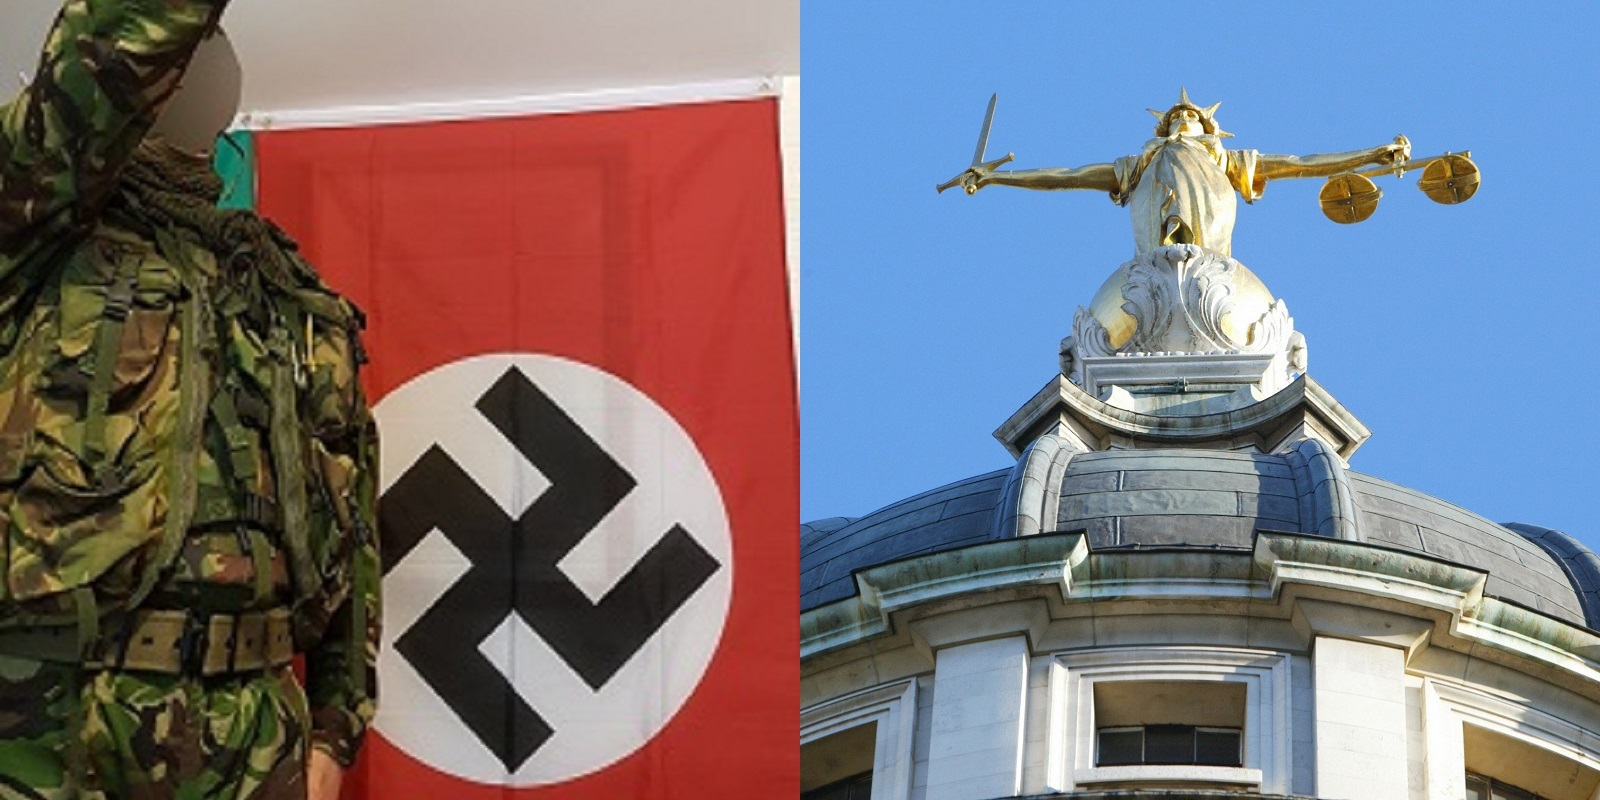 Britain's youngest white supremacist has evaded a custodial sentence after calling for a war against minority groups